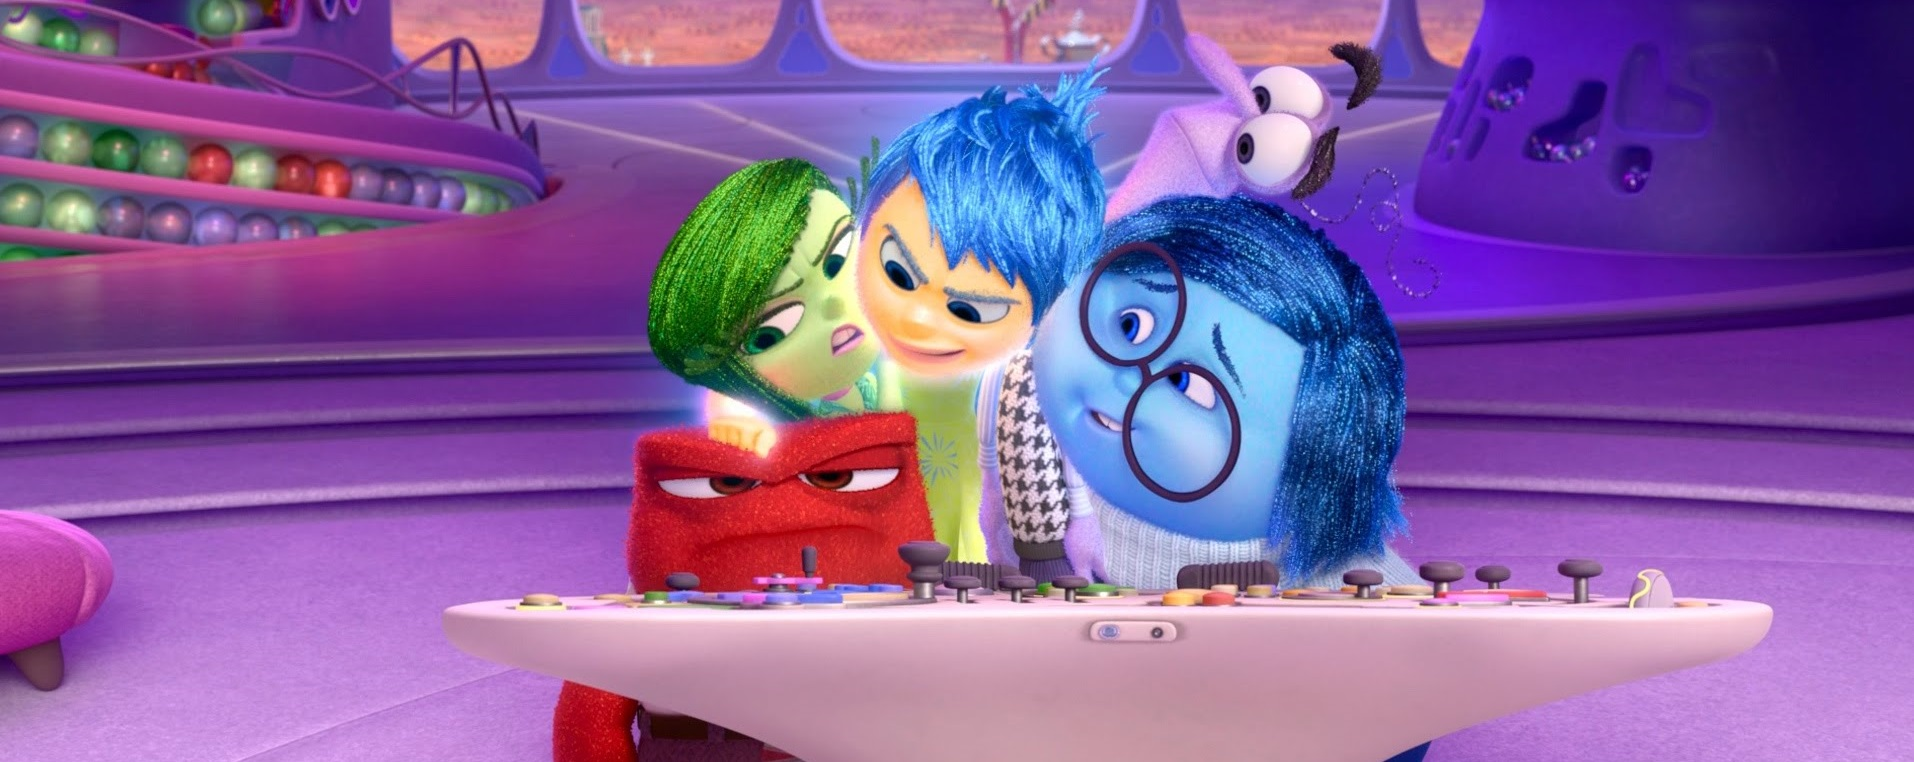 inside out - film 201 i migliori film pills of movies